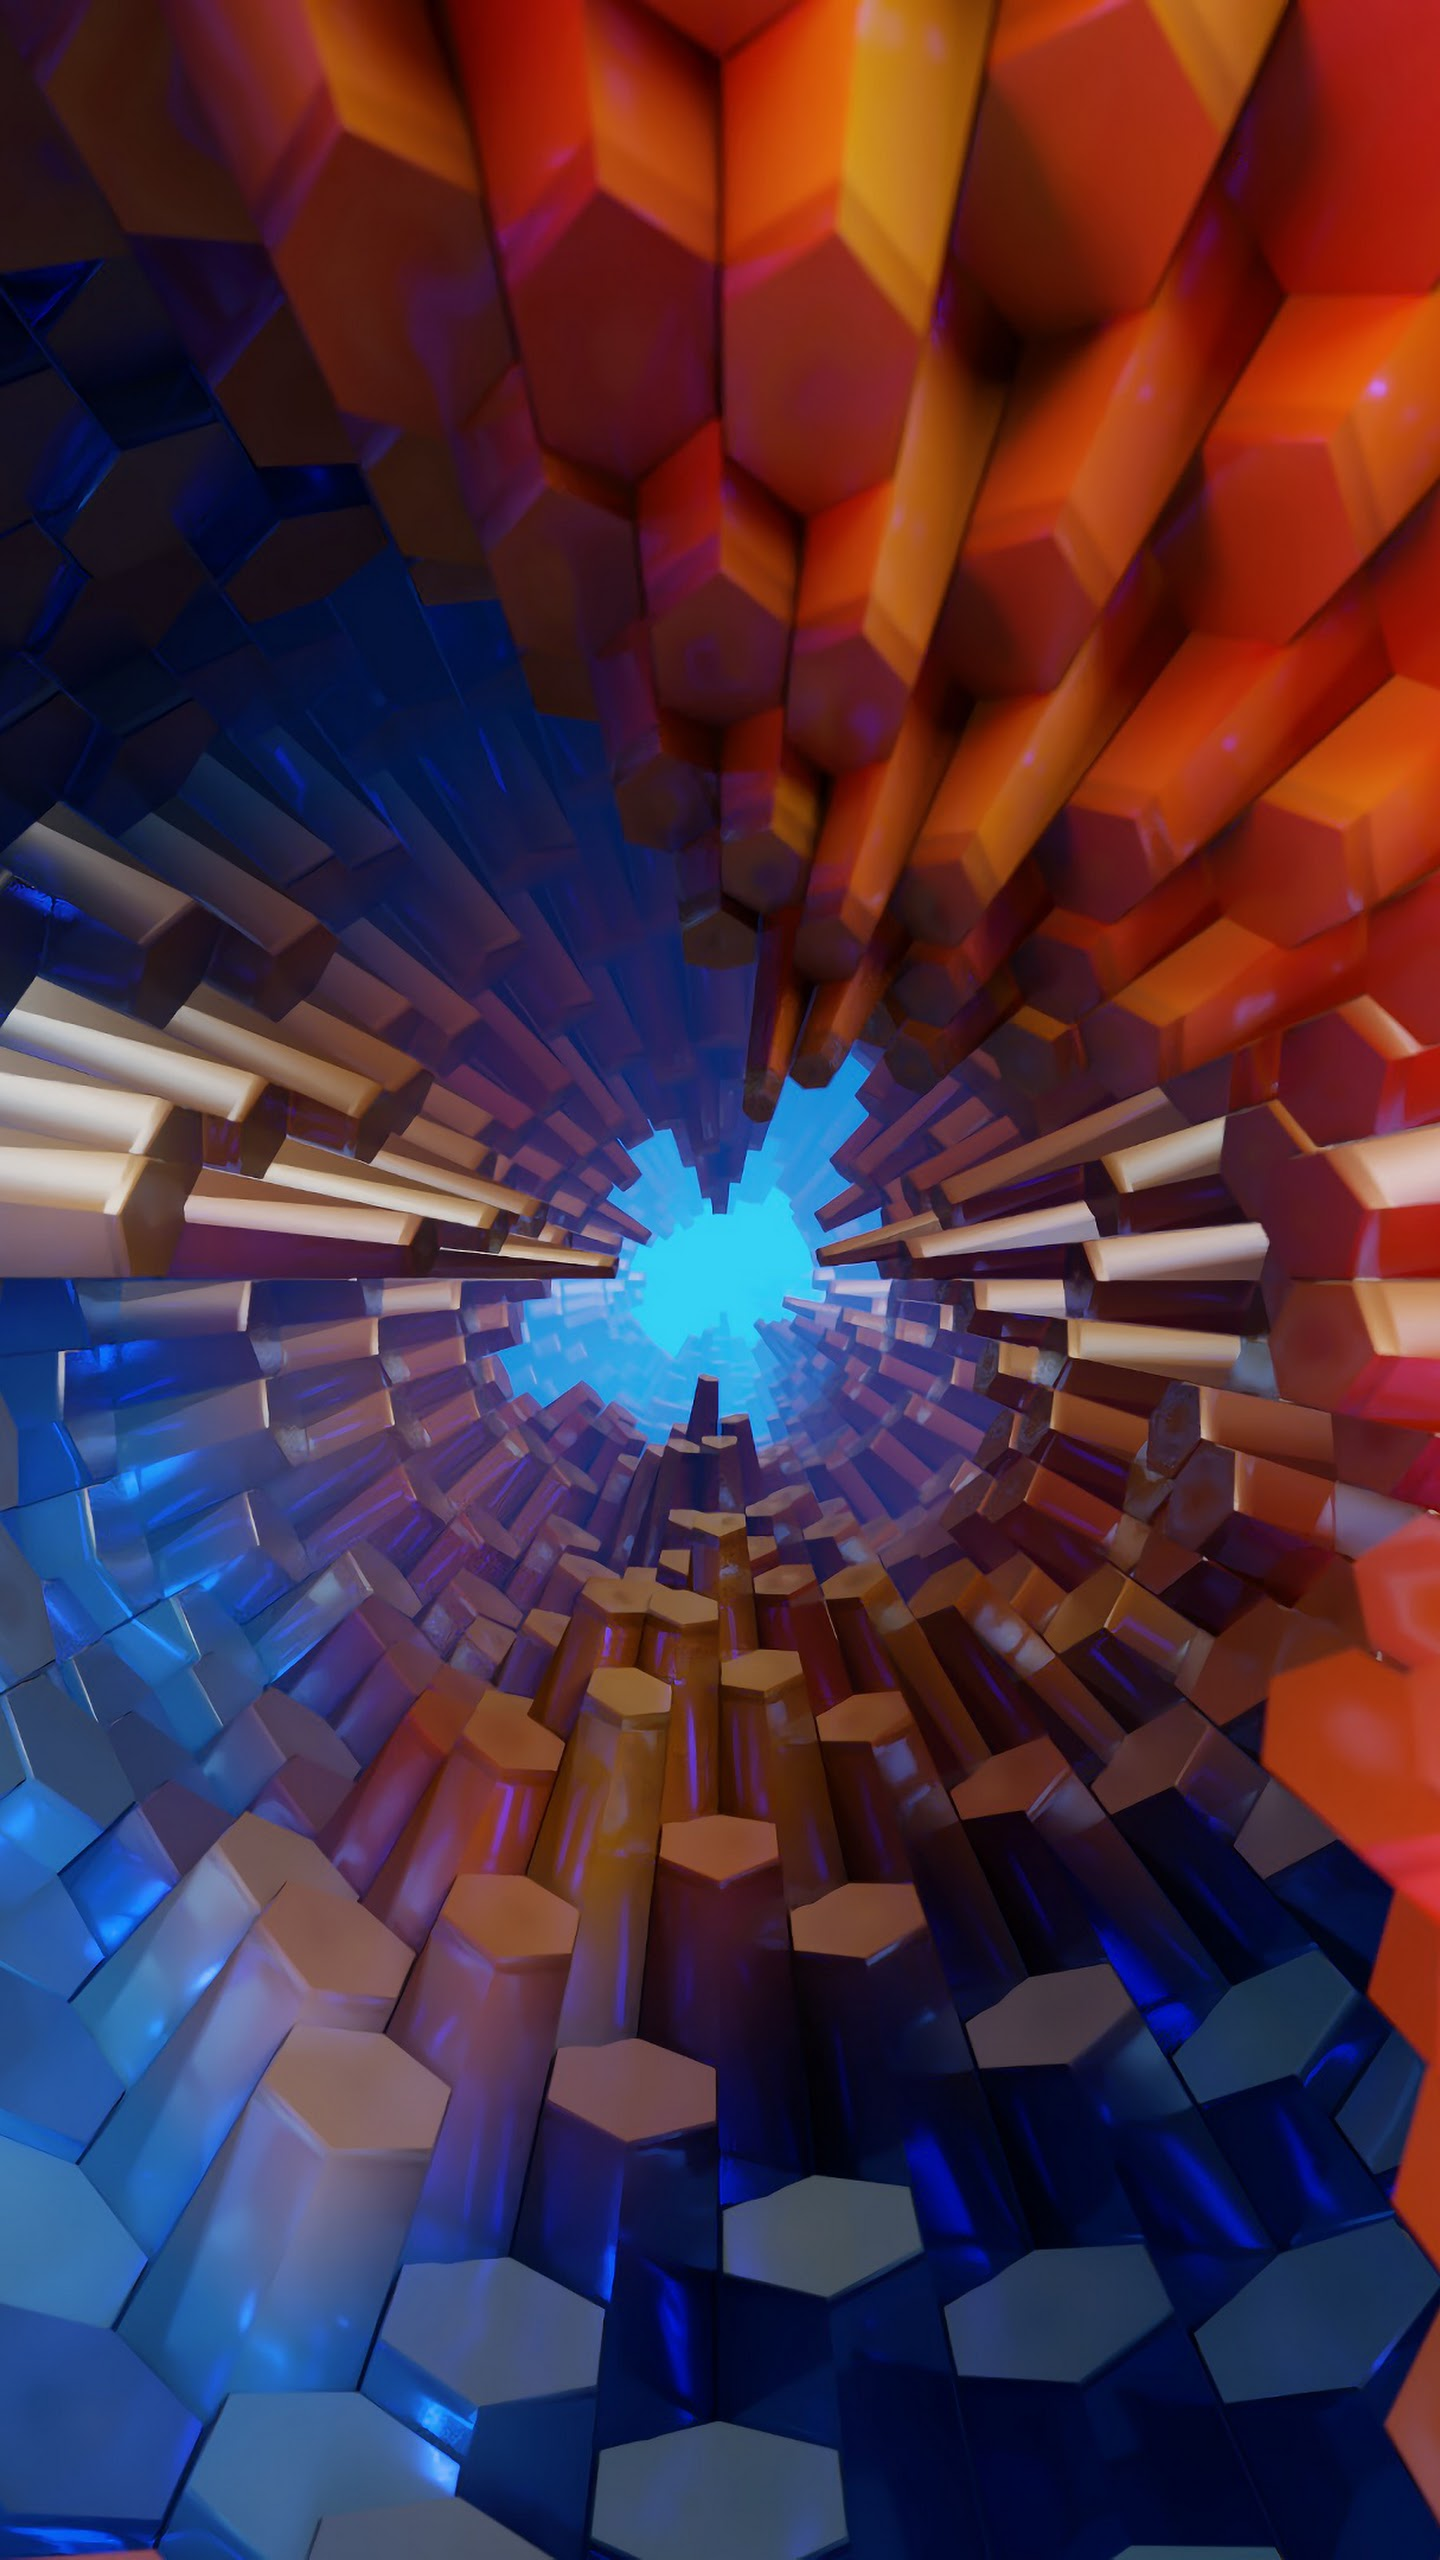 Abstract Hexagon 3d Colorful 4k Wallpaper 50